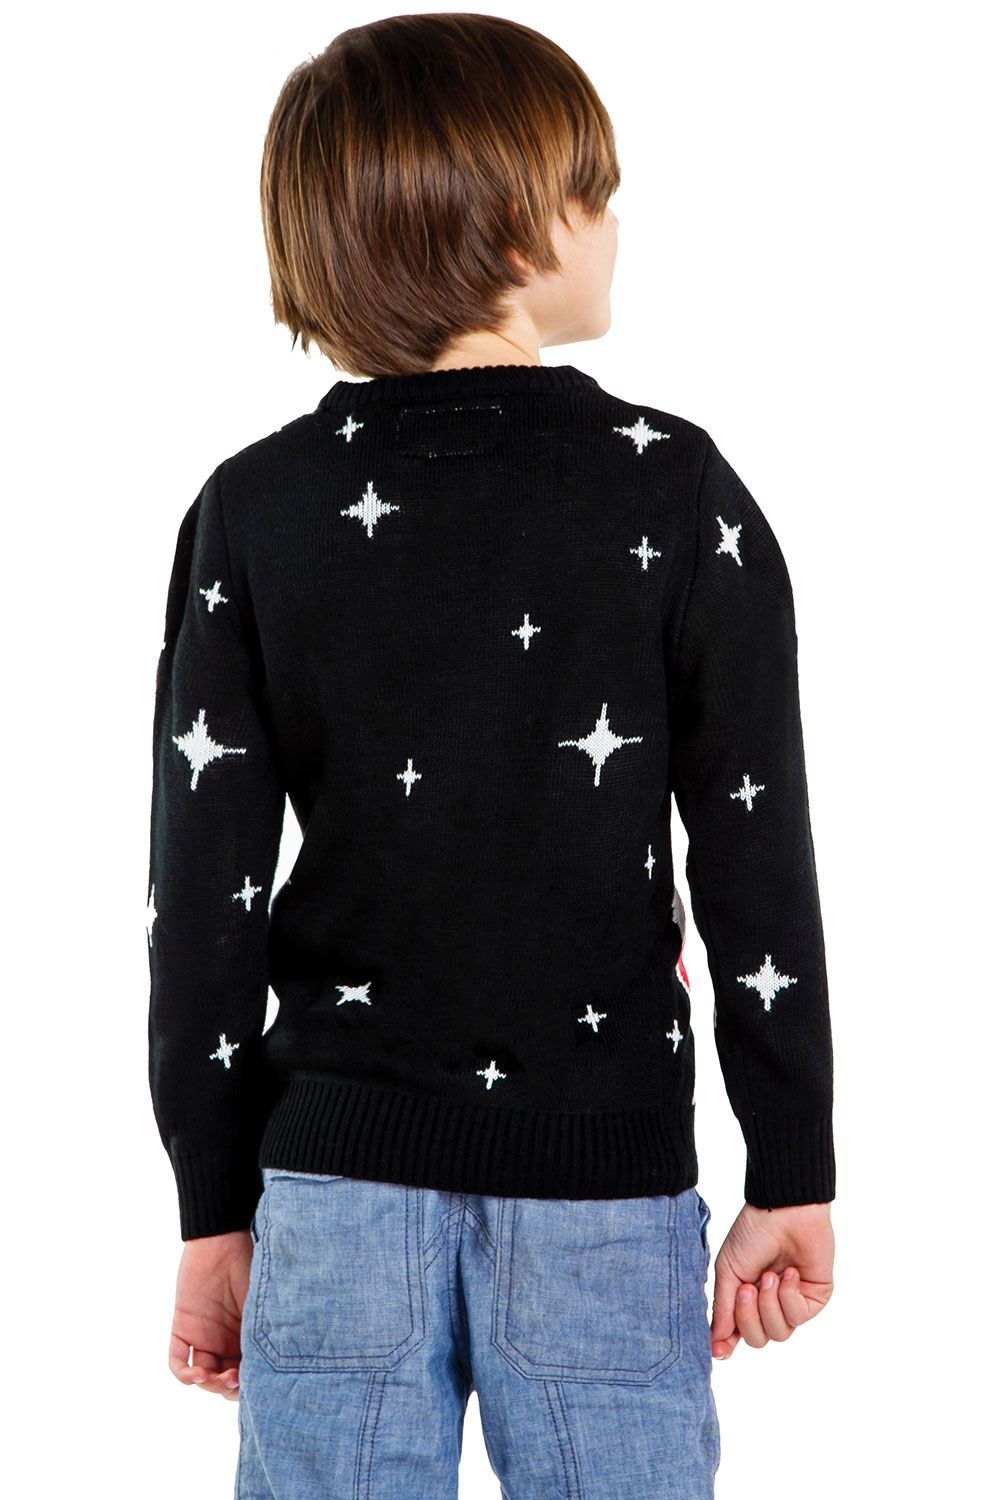 Boys Unicorn Sweater